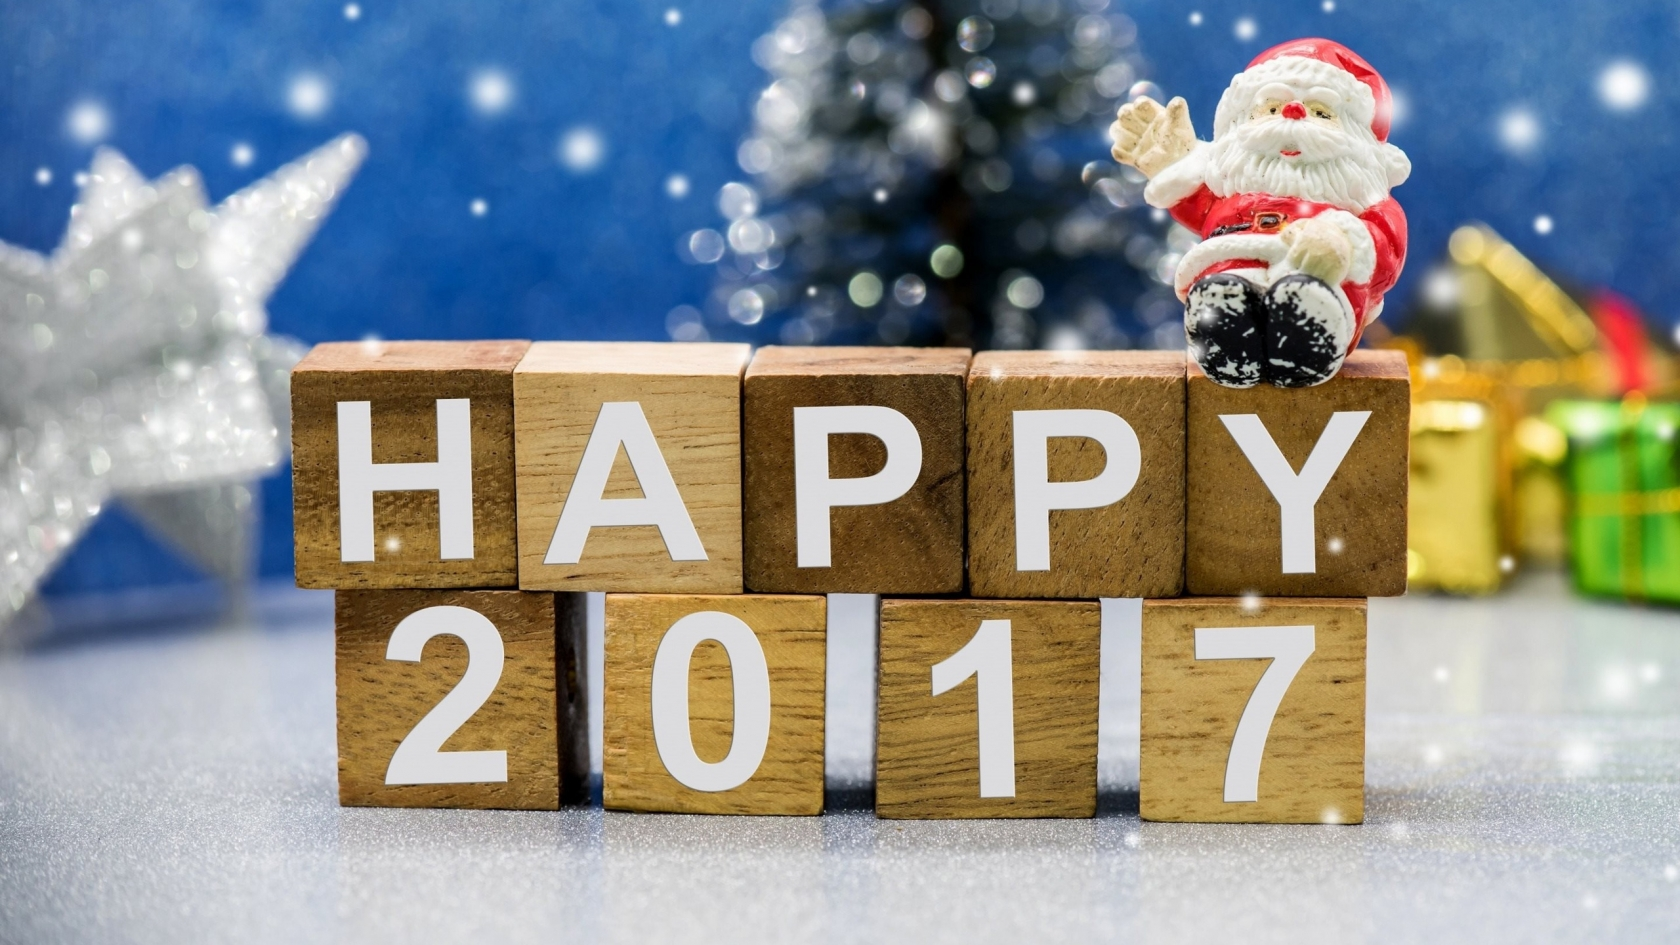 Happy New Year 2017 for 1680 x 945 HDTV resolution